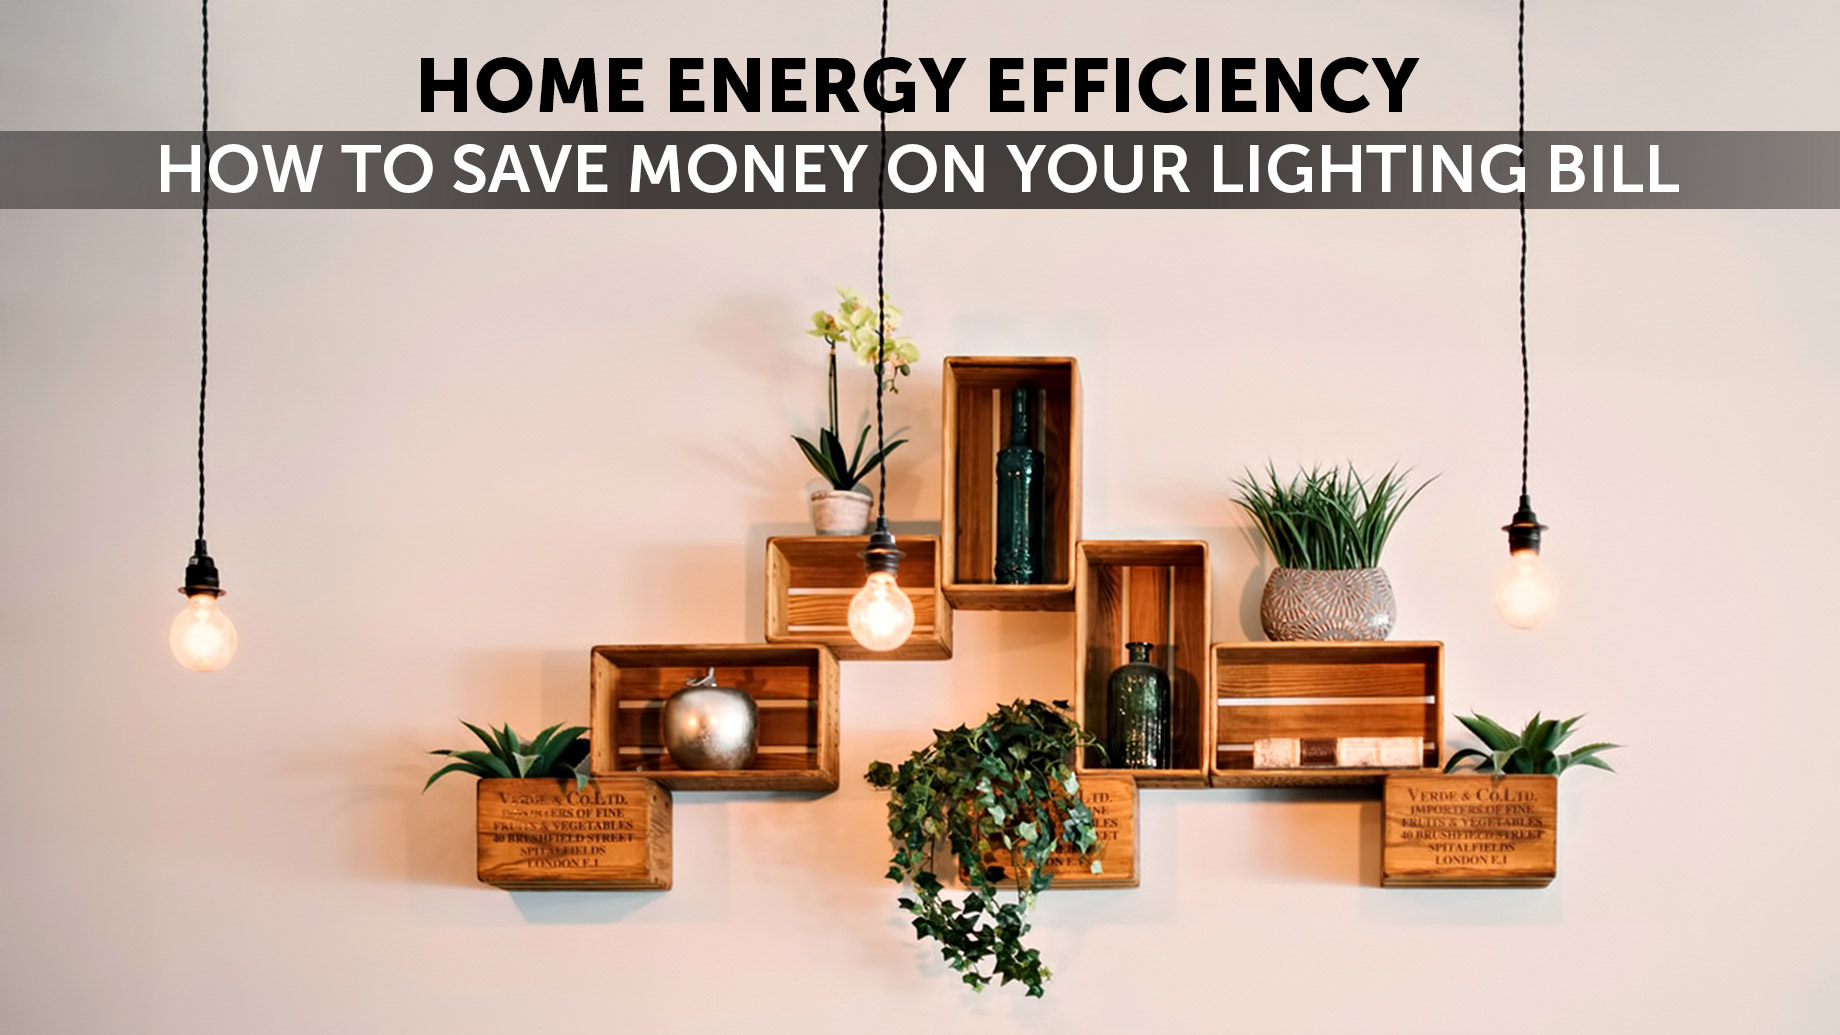 Home Energy Efficiency - How to Save Money on Your Lighting Bill